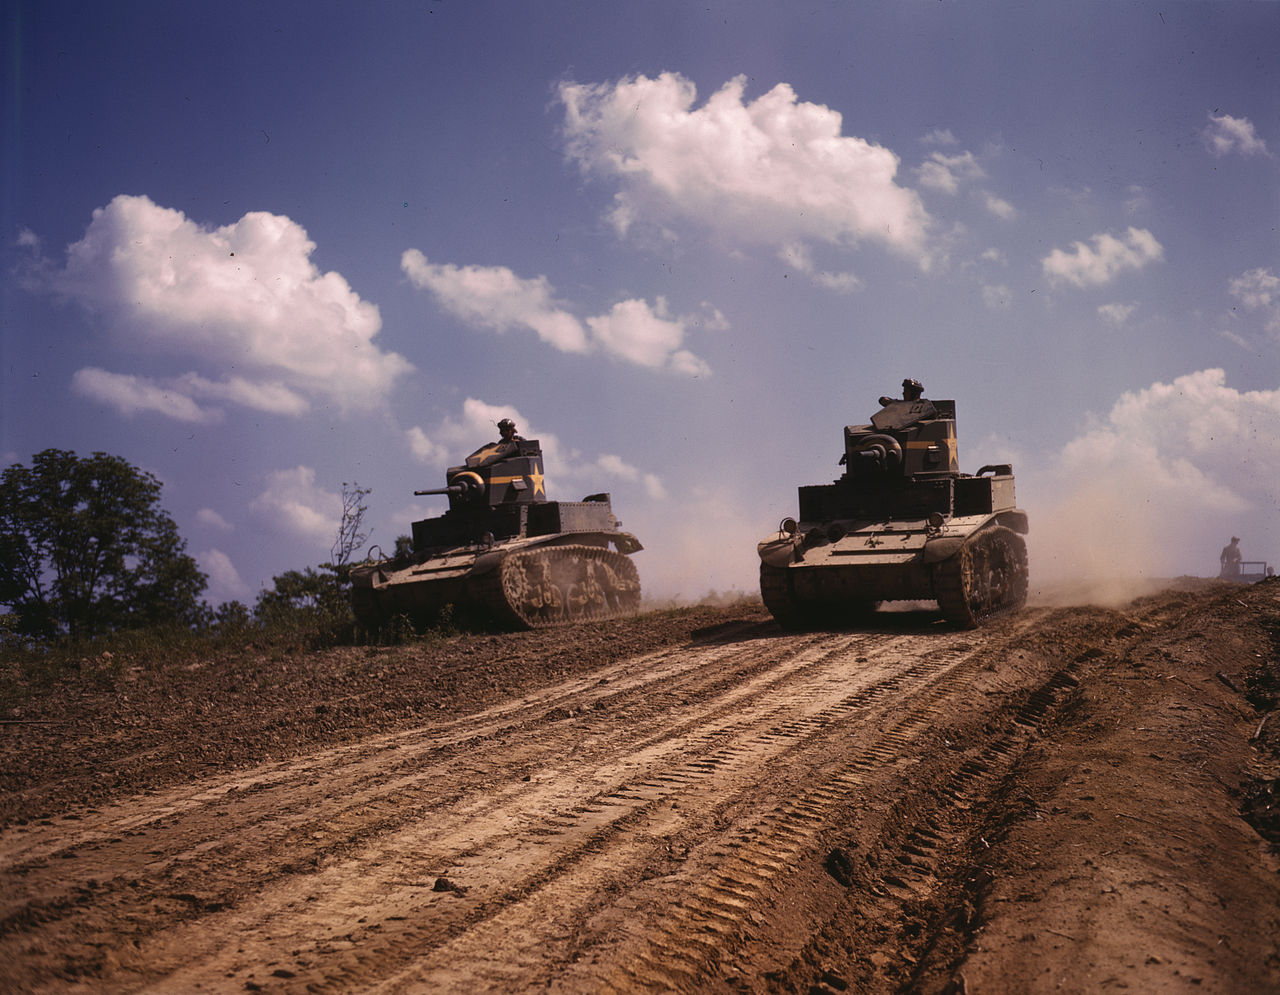 M3 Stuart light tanks at Fort Knox, Kentucky, 1942